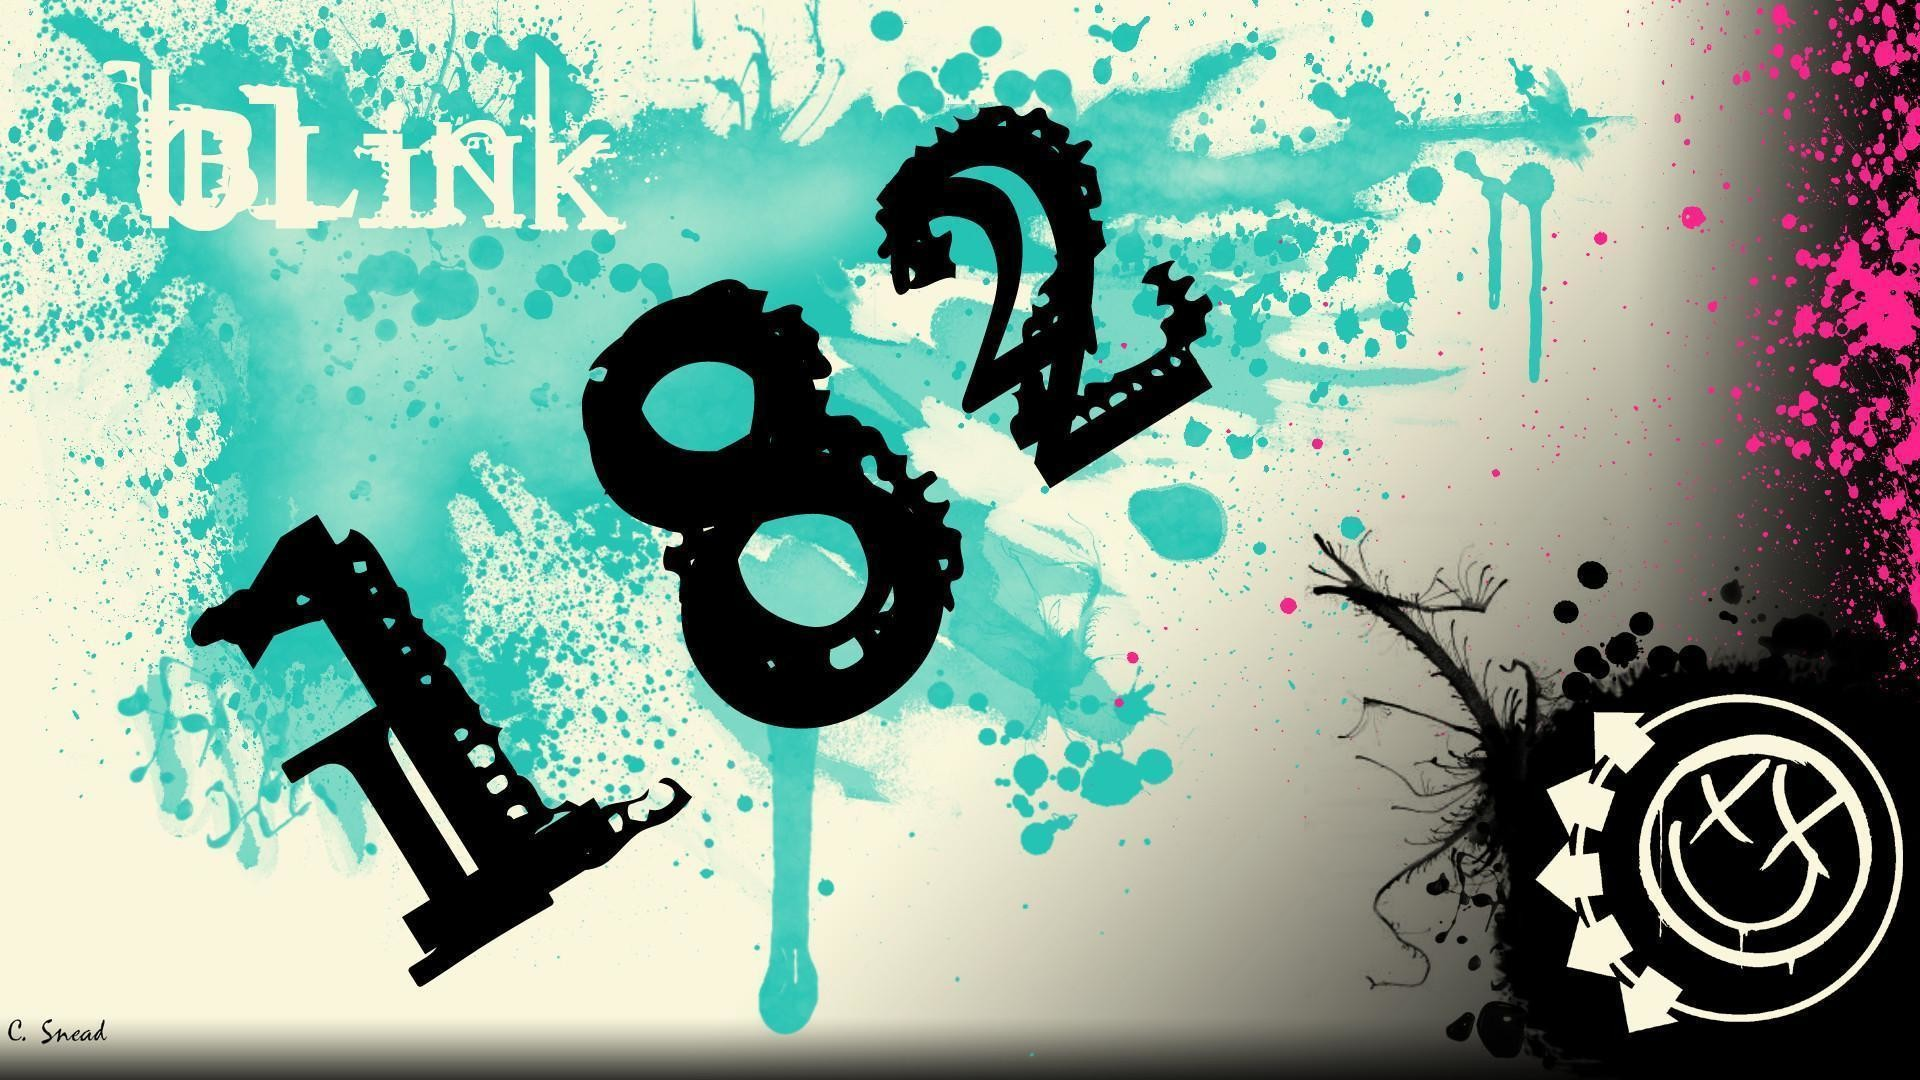 1920x1080 Blink 182 HD Desktop Wallpapers for Widescreen, High Definition .